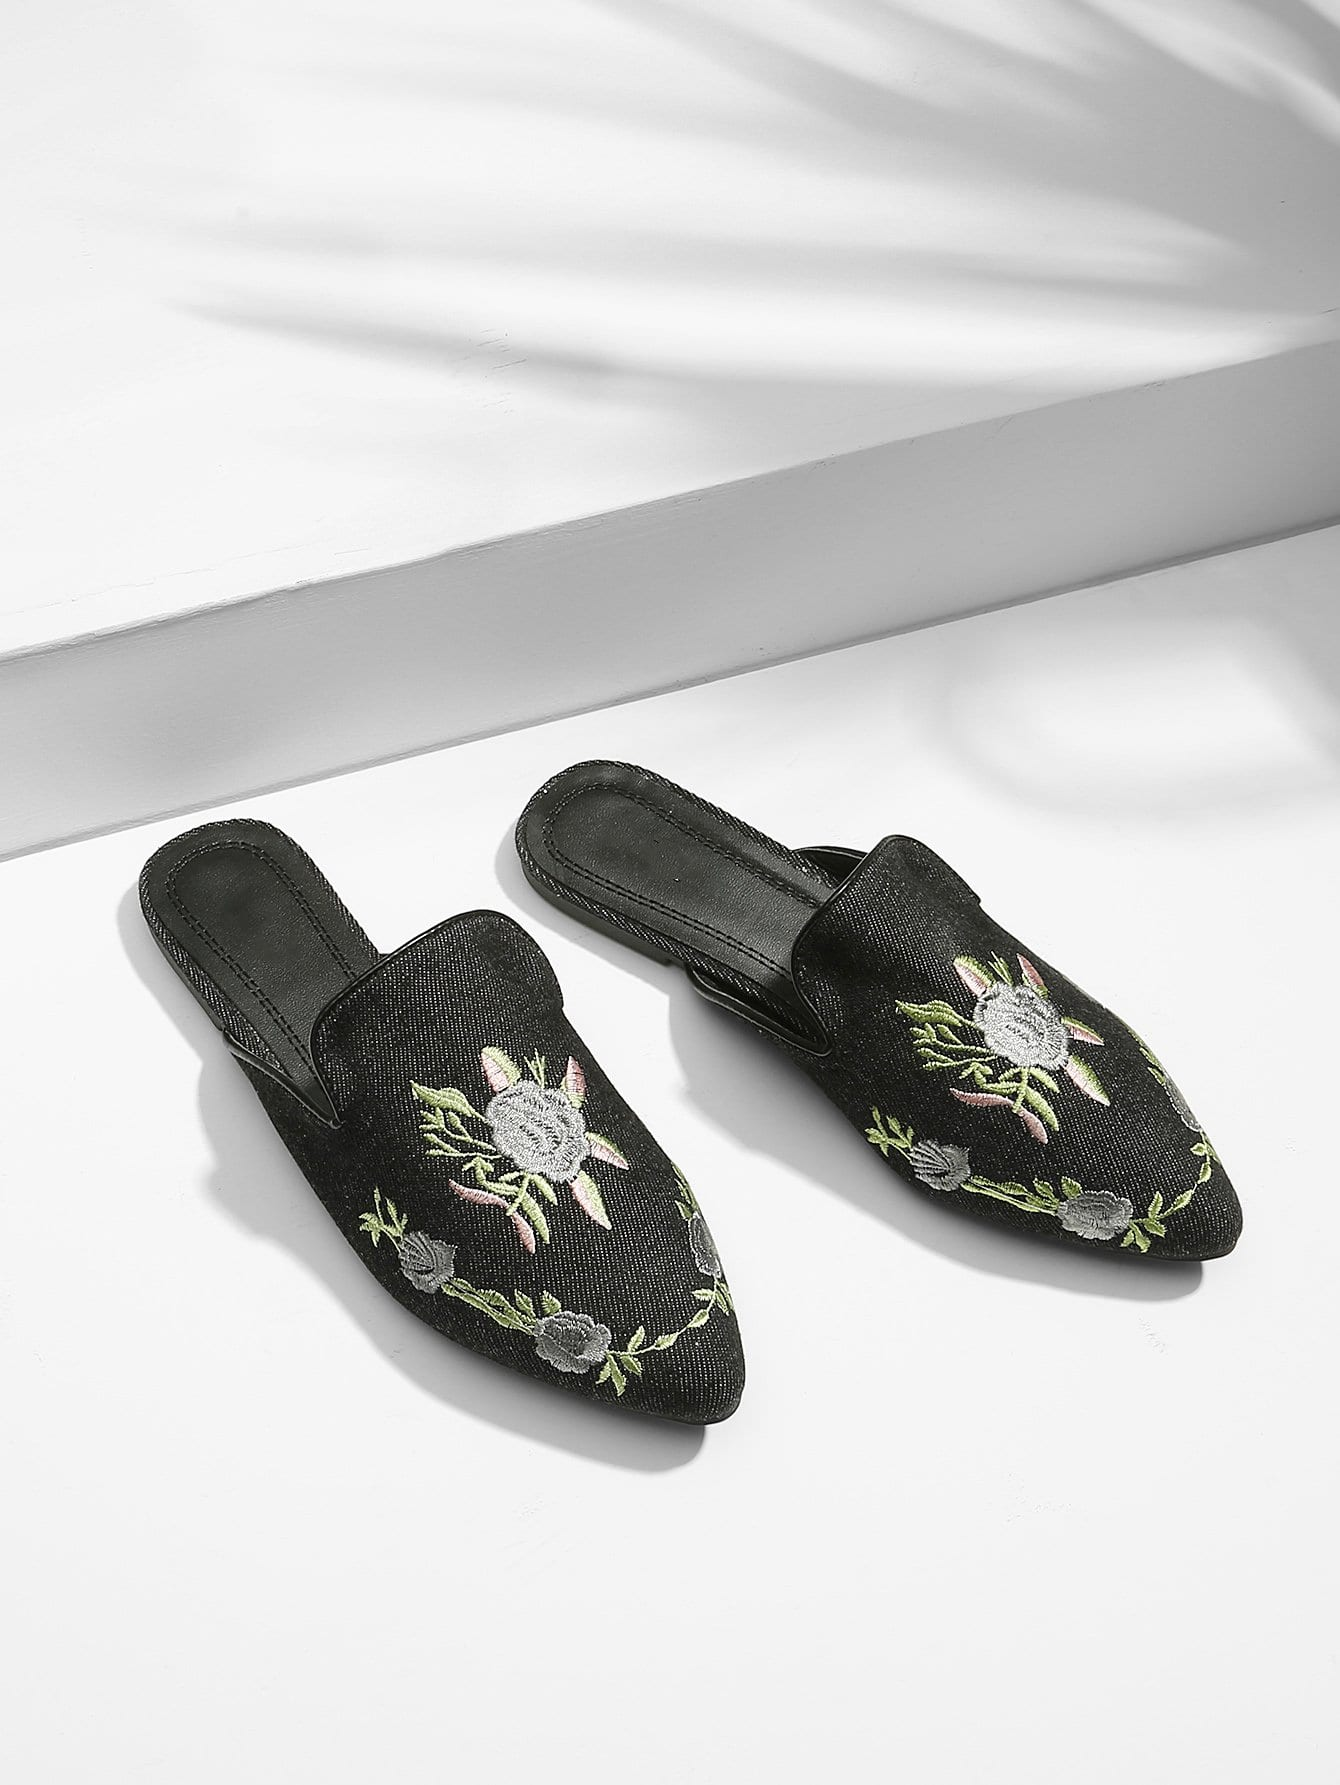 Denim Flower Embroidered Flats vintage women flats old beijing mary jane casual flower embroidered cloth soft canvas dance ballet shoes woman zapatos de mujer